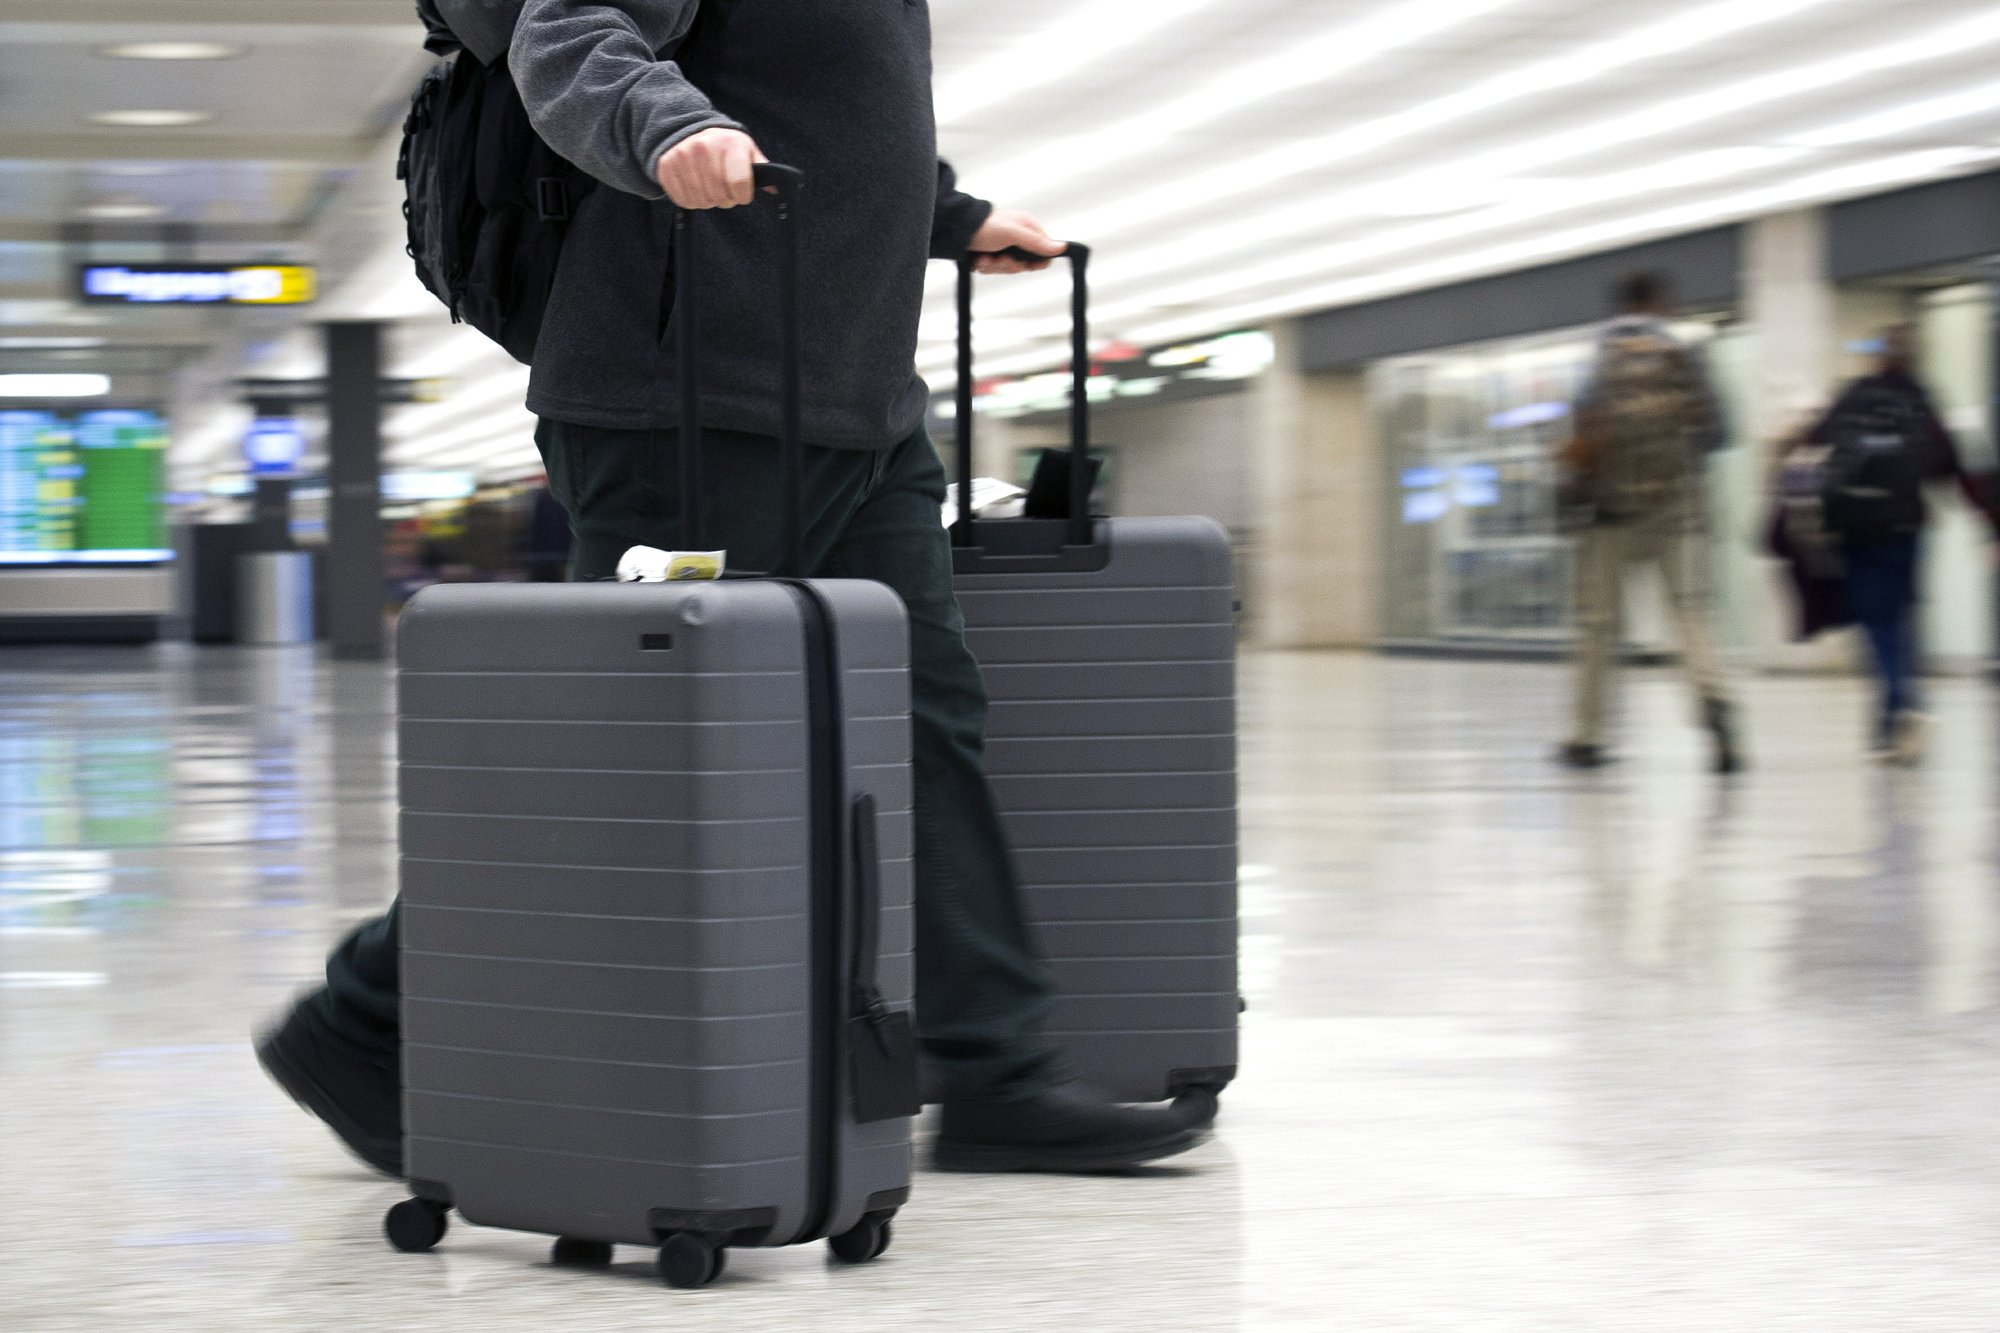 US searches of phones, laptops at airports rising, suit says